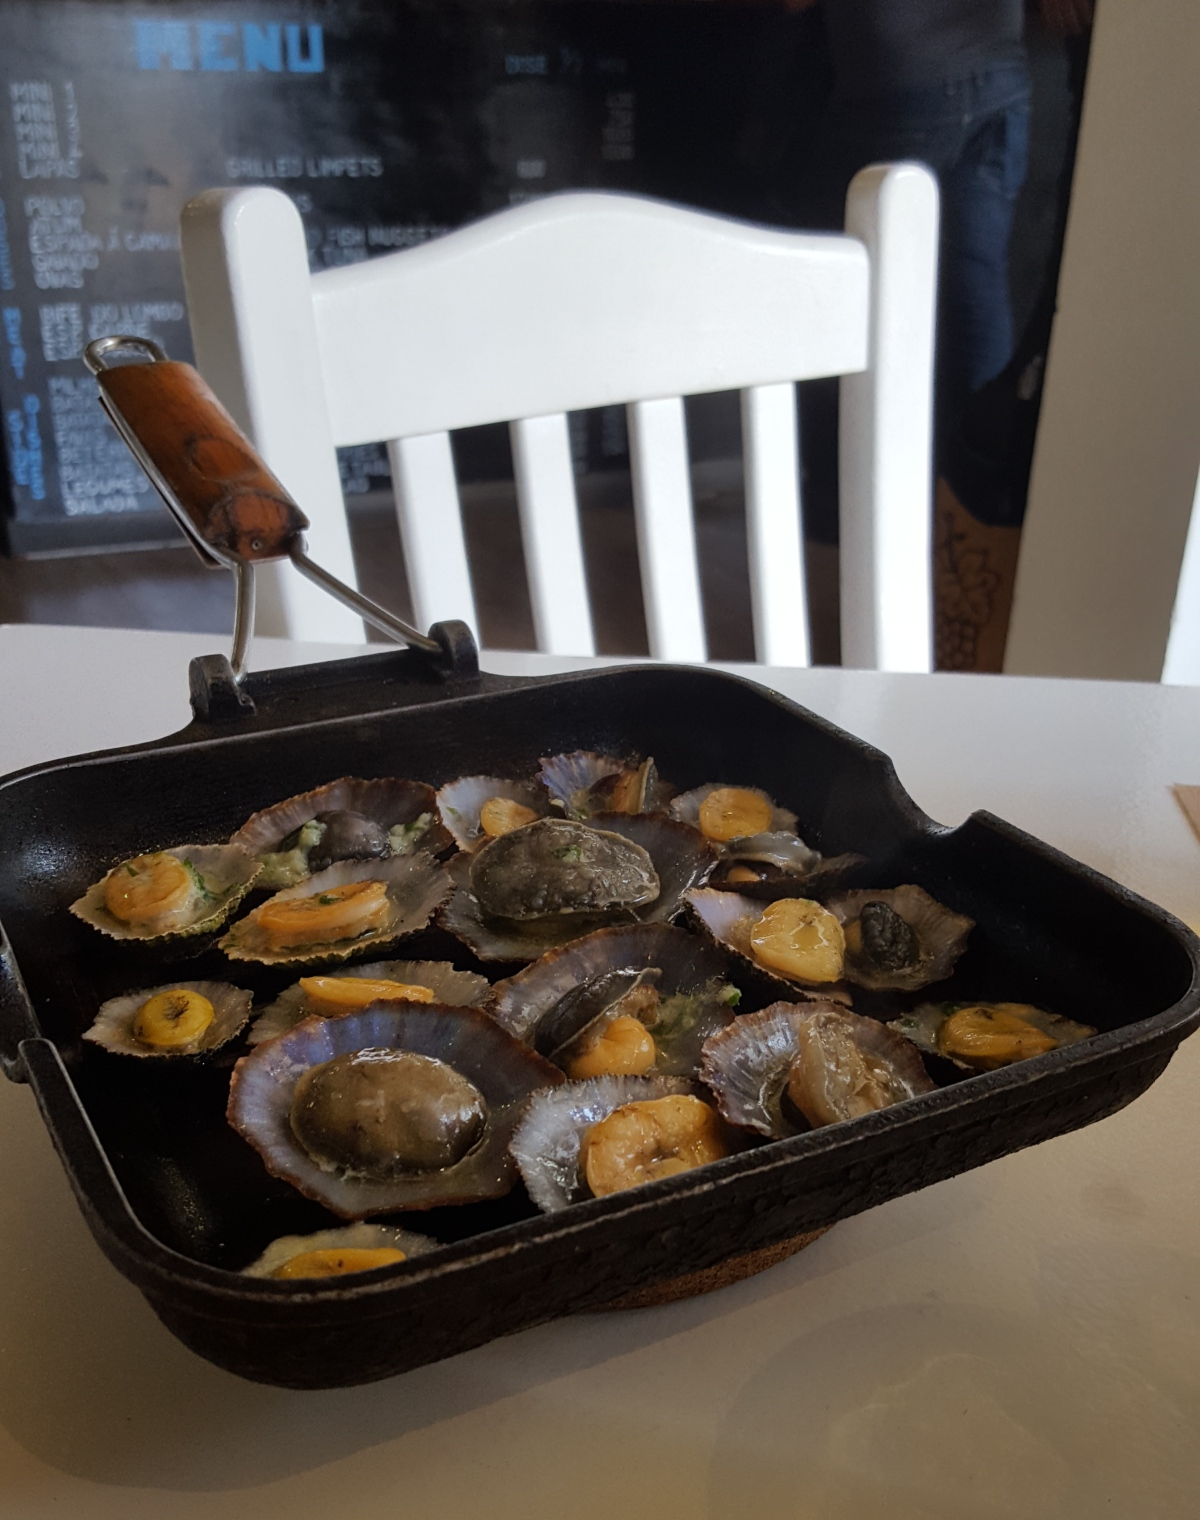 Grilled limpets - simply exquisite